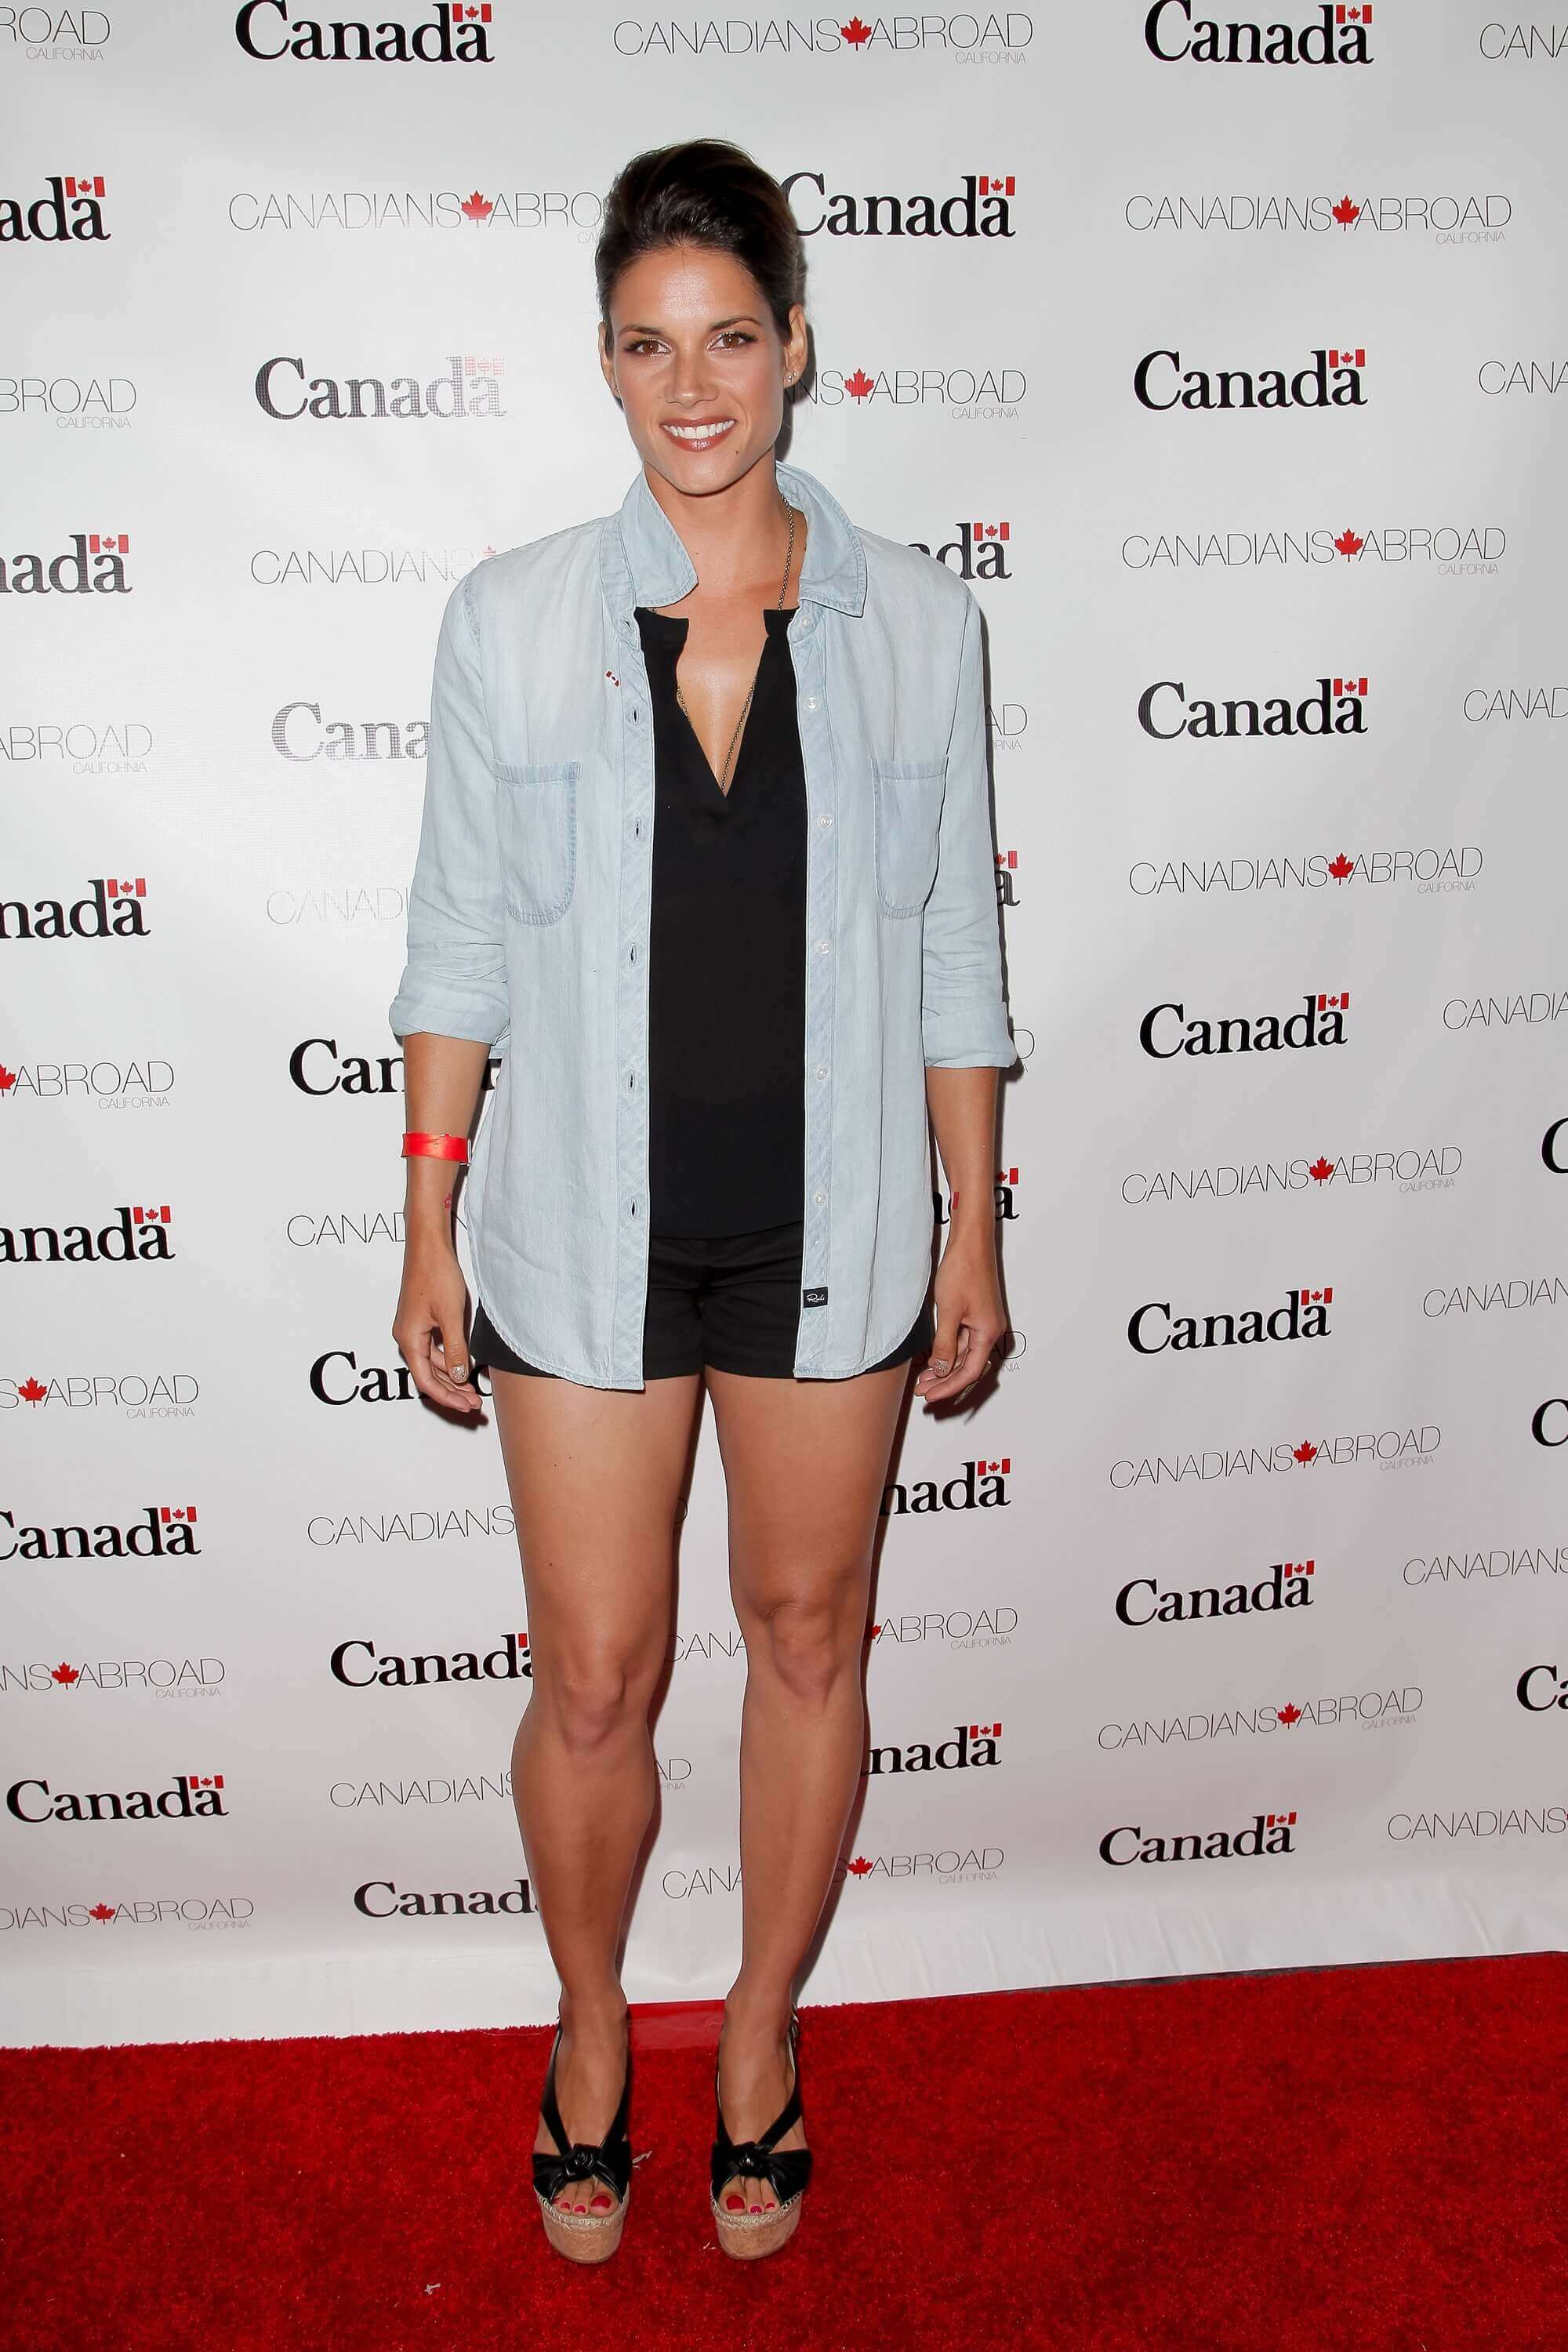 61 Hottest Missy Peregrym Boobs Pictures Are Just Too Damn